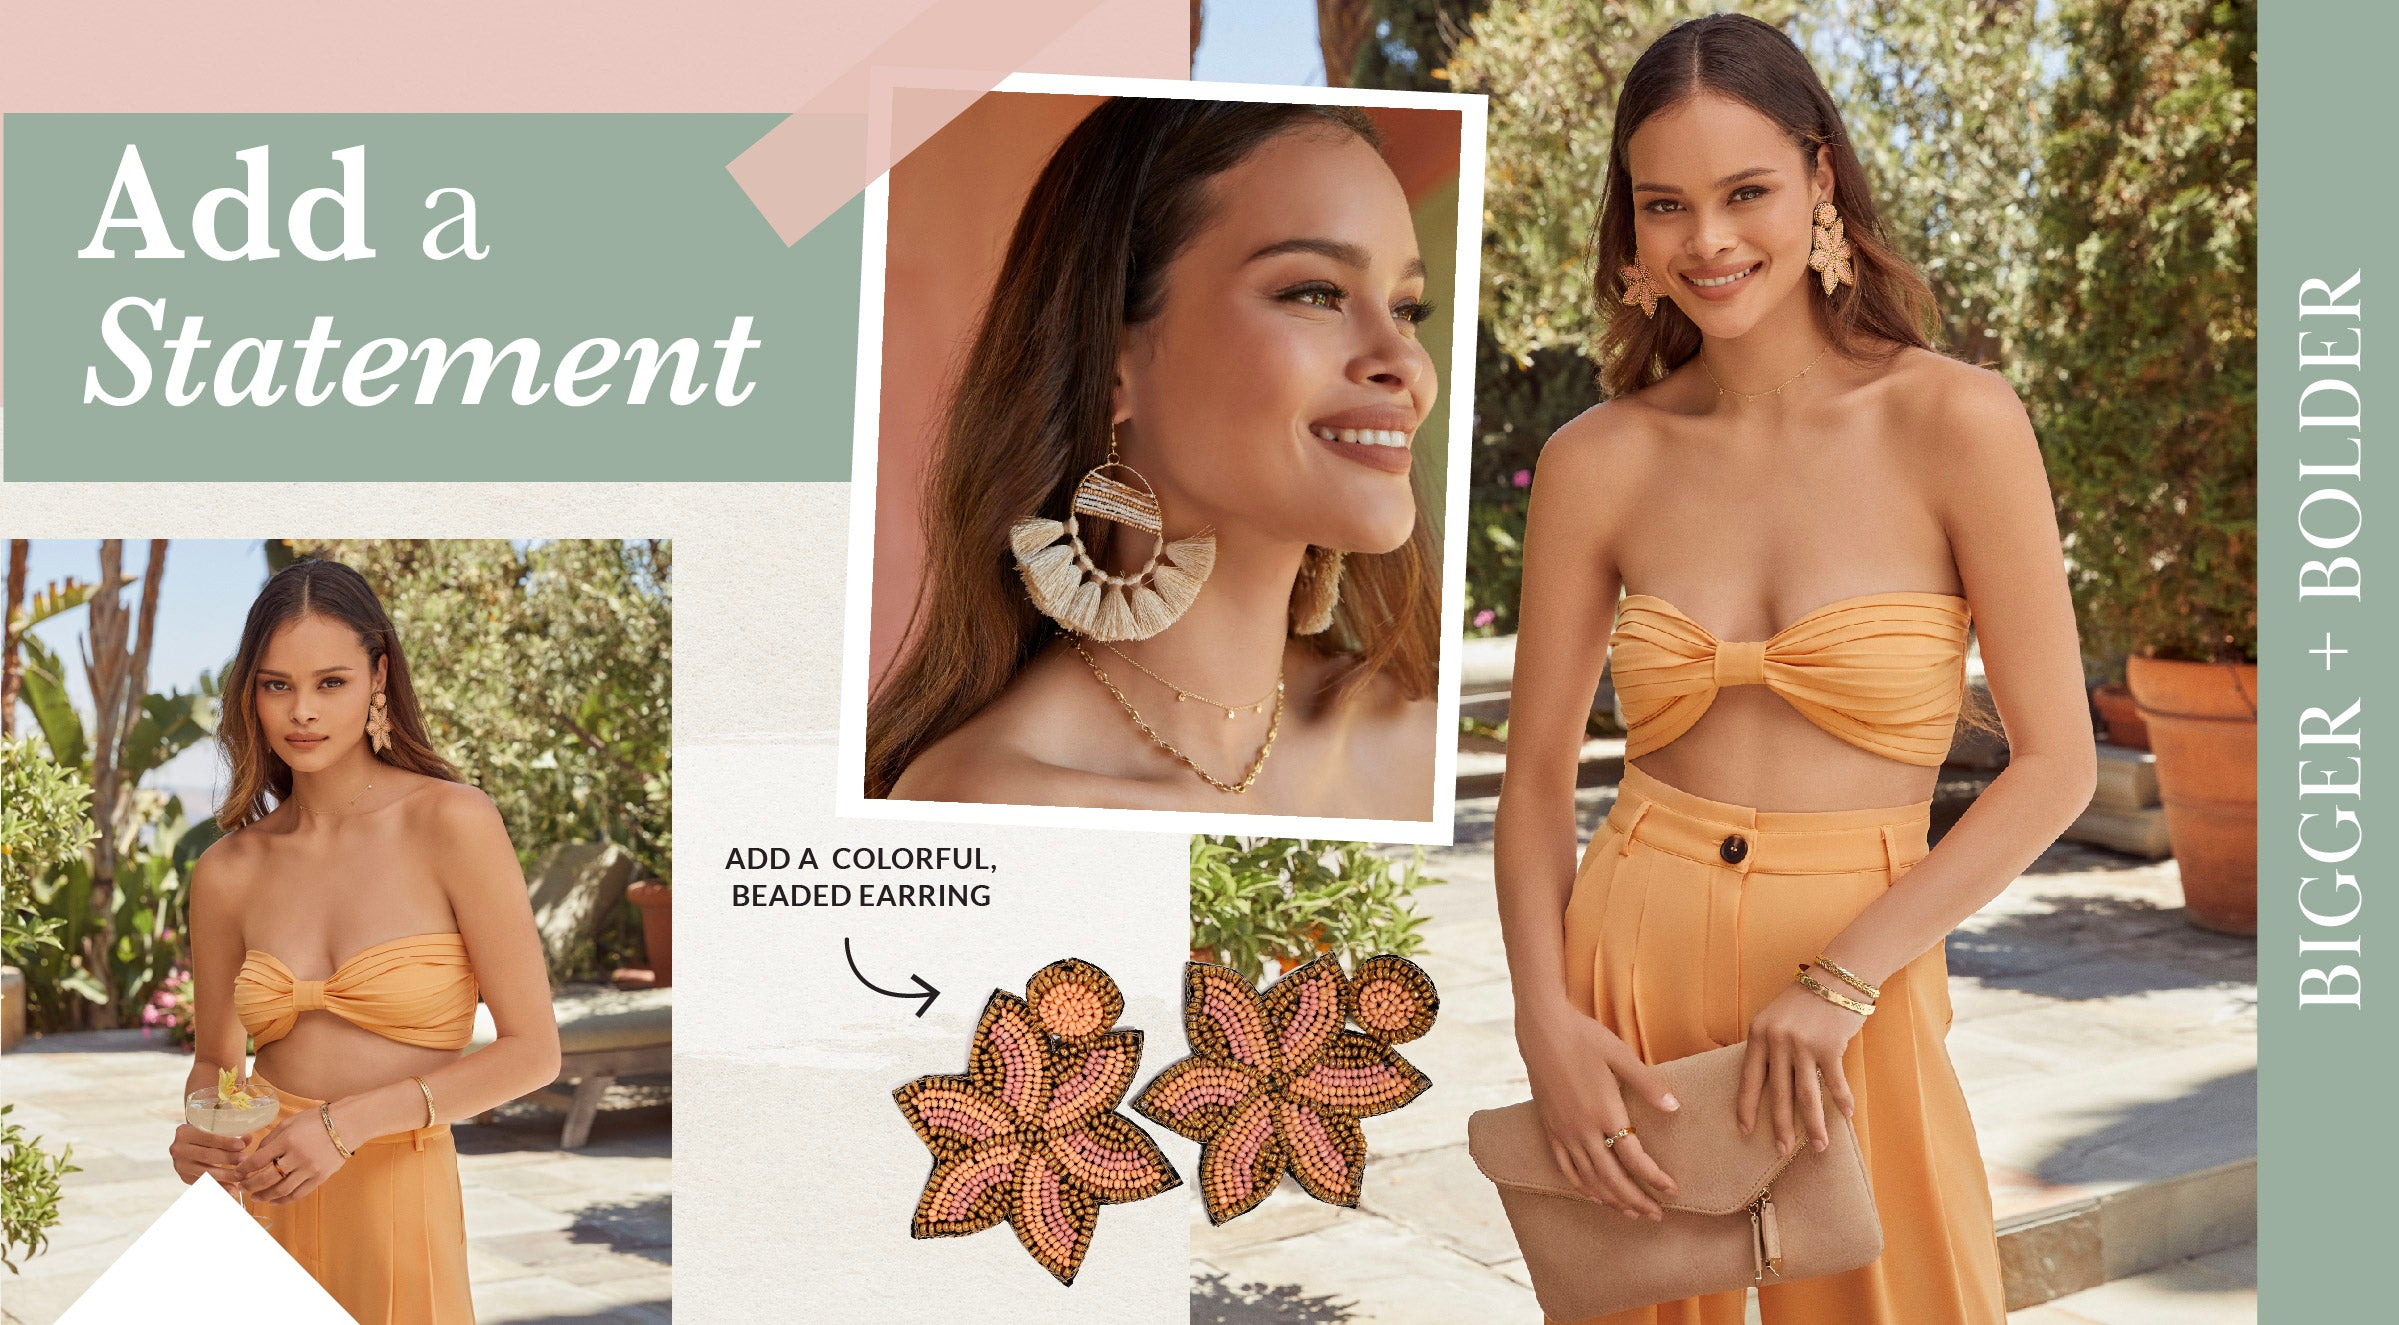 Enhance your dinner look by adding a colorful, beaded earring. The bigger, bolder, and brighter the better! Rewear this daring accessory all triplong with everything from your one piece swimmy to your daytime romper.